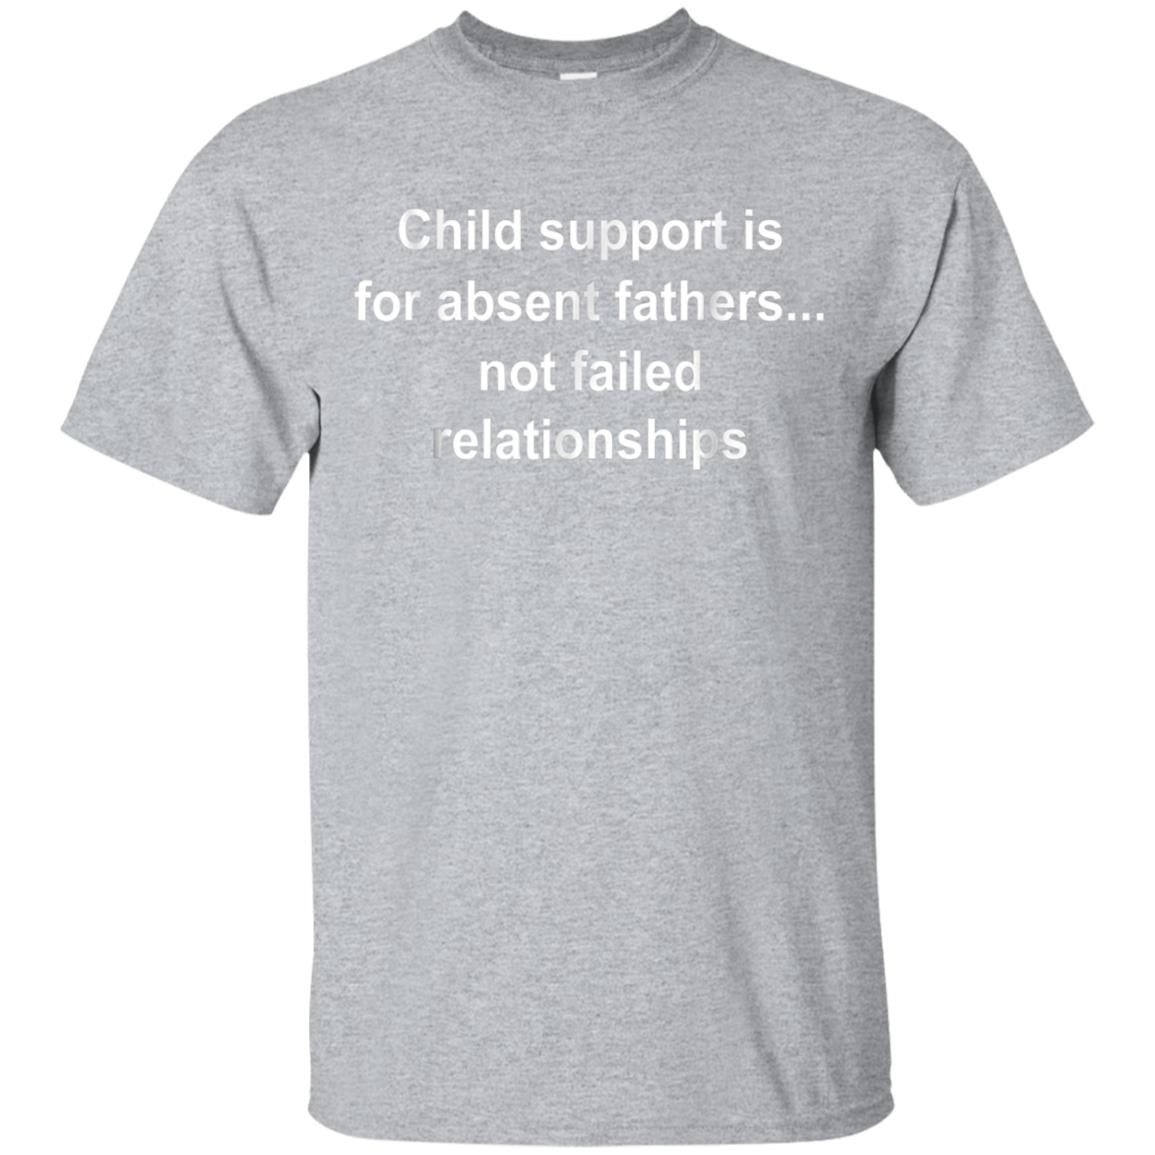 Child support is for absent fathers not failed relationships 99promocode